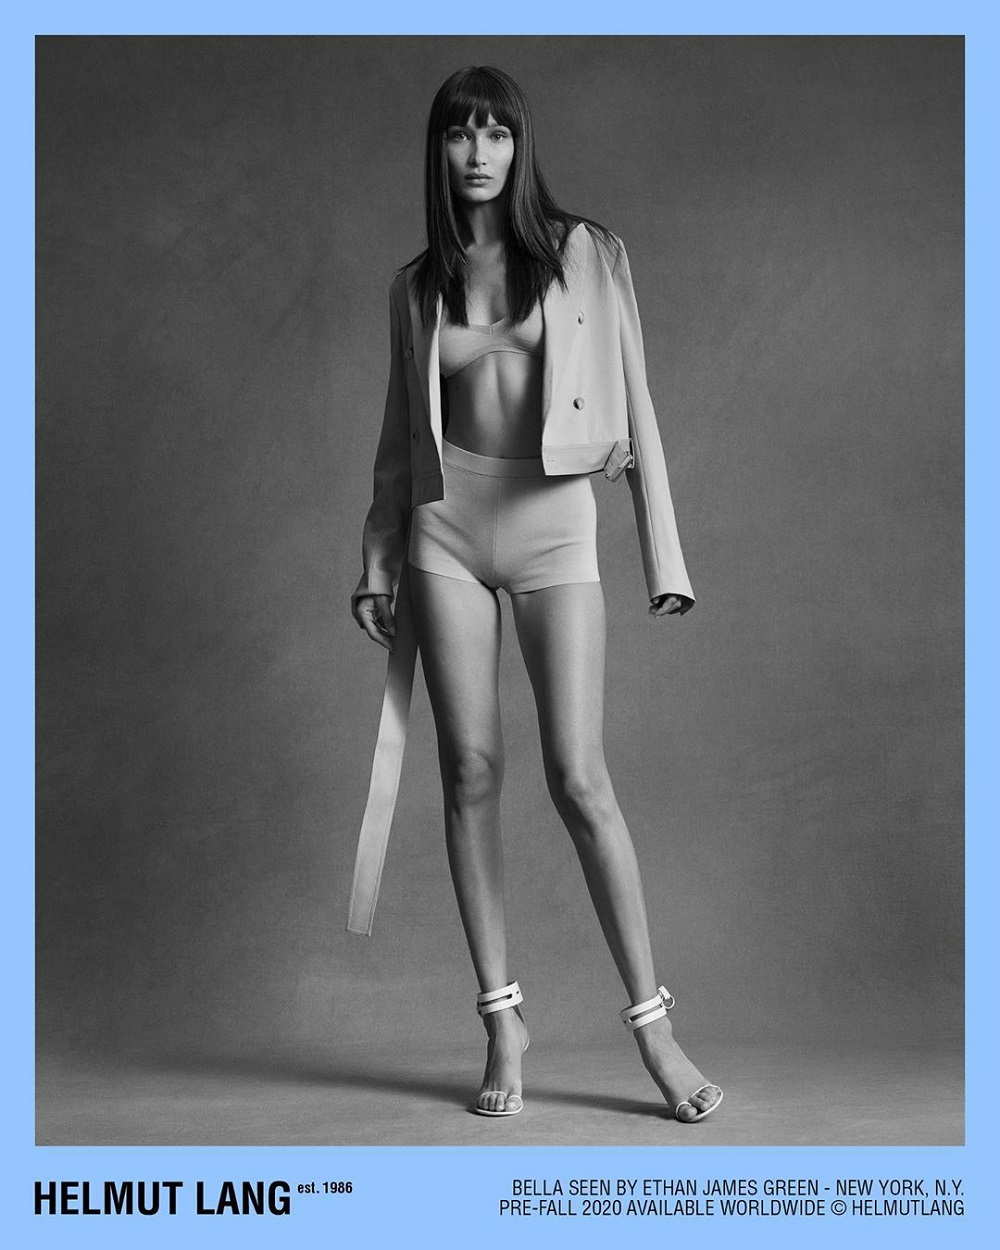 Helmut Lang Pre-Fall 2020 Fashion Ad Campaign with Bella Hadid Photos